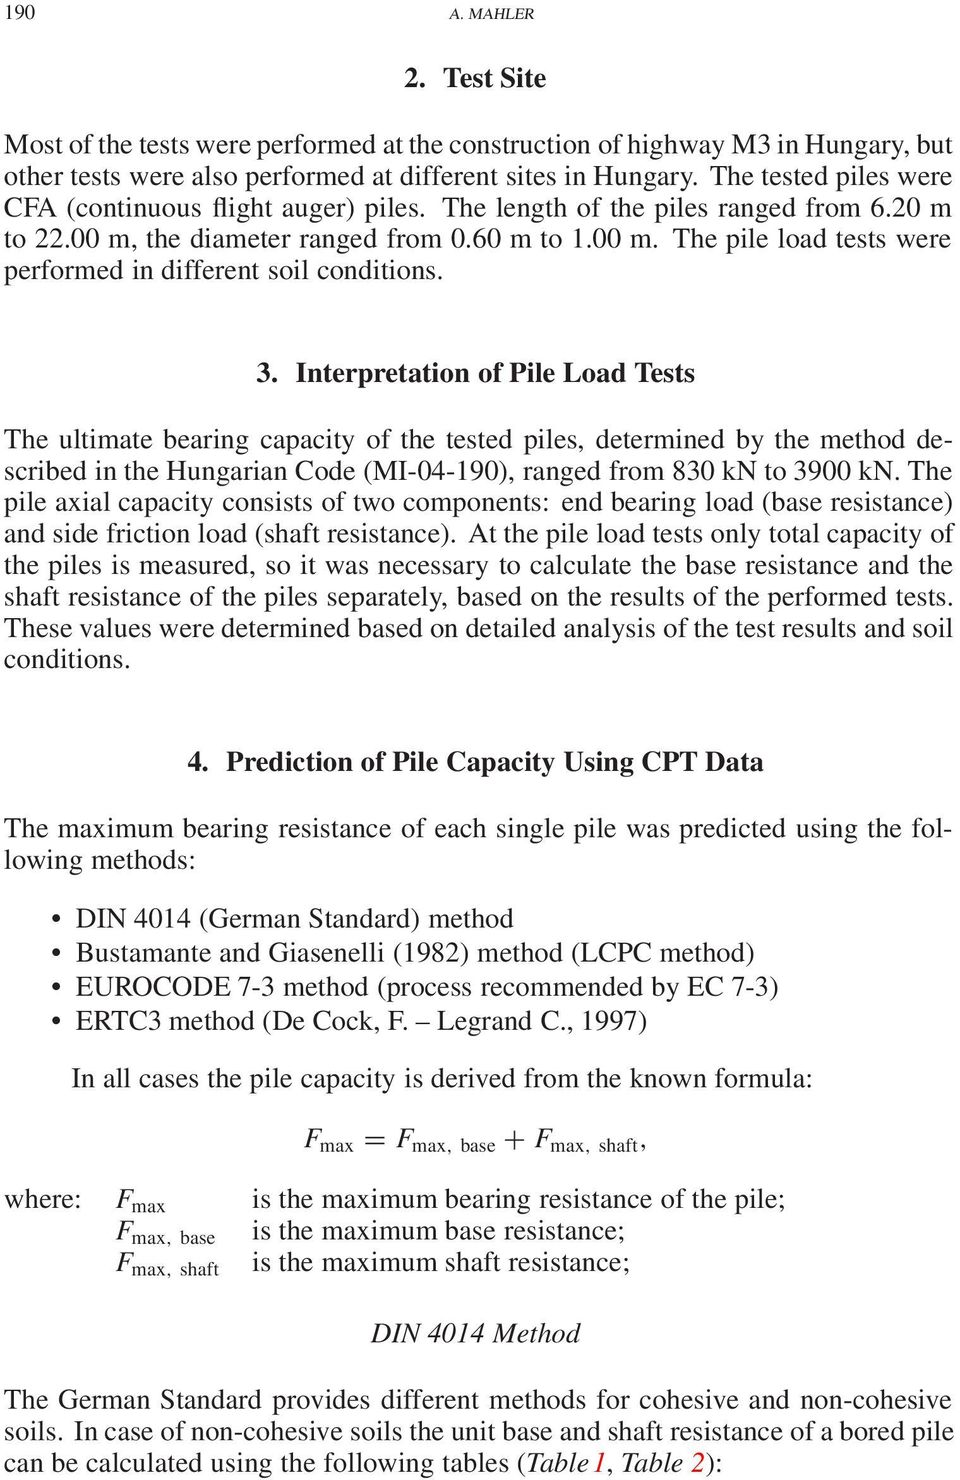 USE OF CONE PENETRATION TEST IN PILE DESIGN - PDF